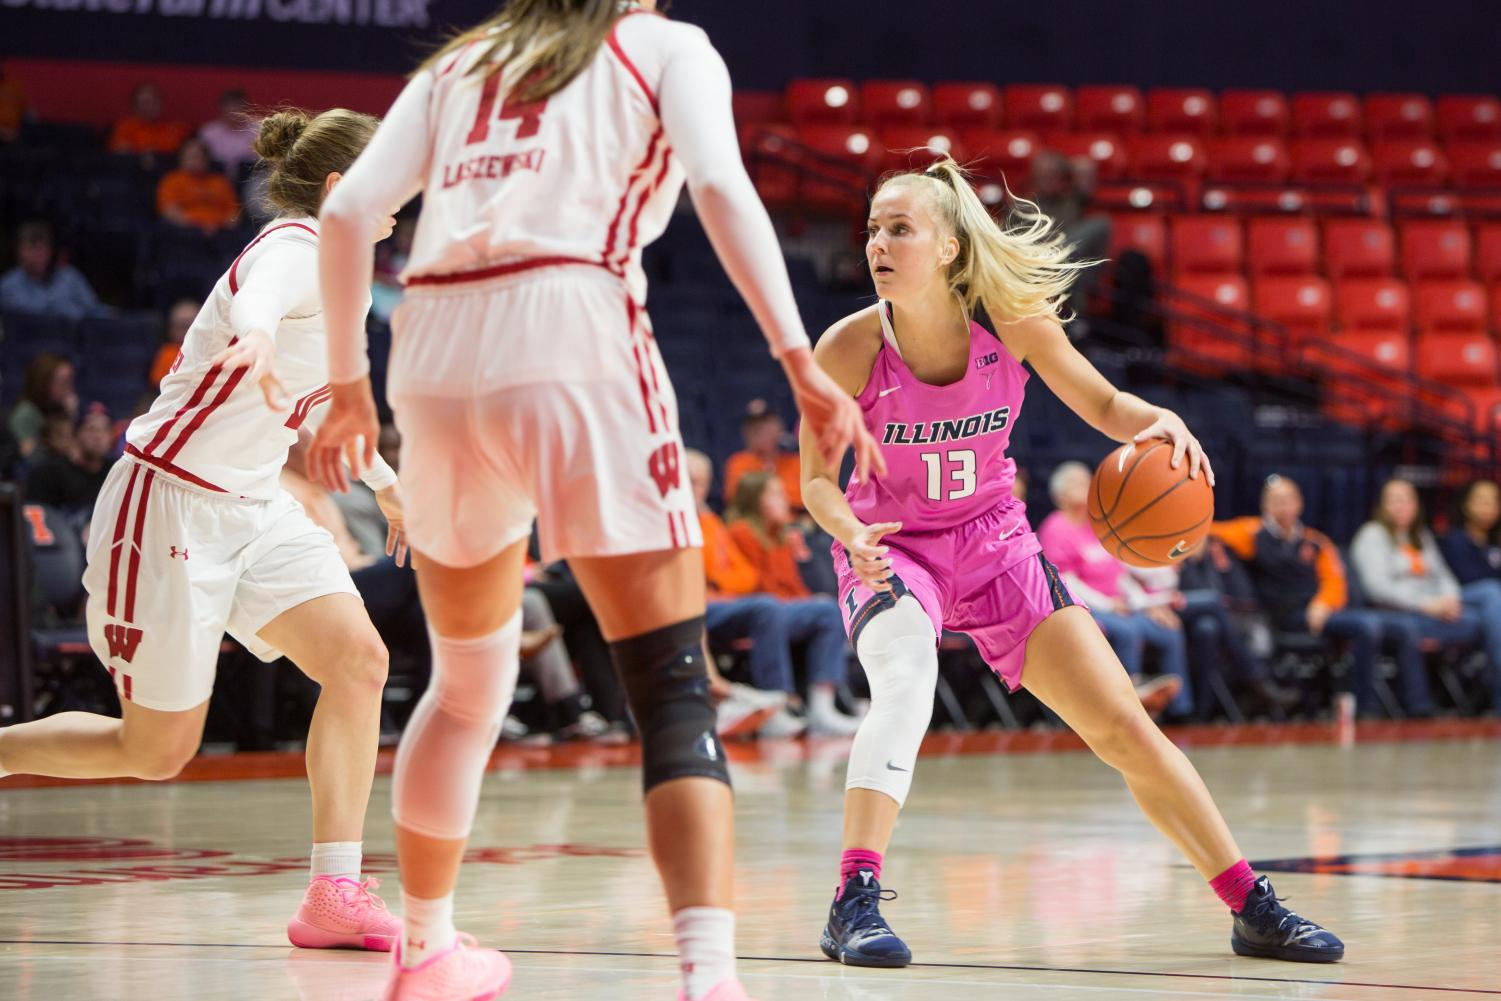 Redshirt-junior guard Petra Holešínská plants her feet during the game against Wisconsin on Sunday. The Illini lost the match 73-64. Illinois extended its losing streak to six games following its loss to Ohio State at home Thursday night. The Illini lost 78-58.